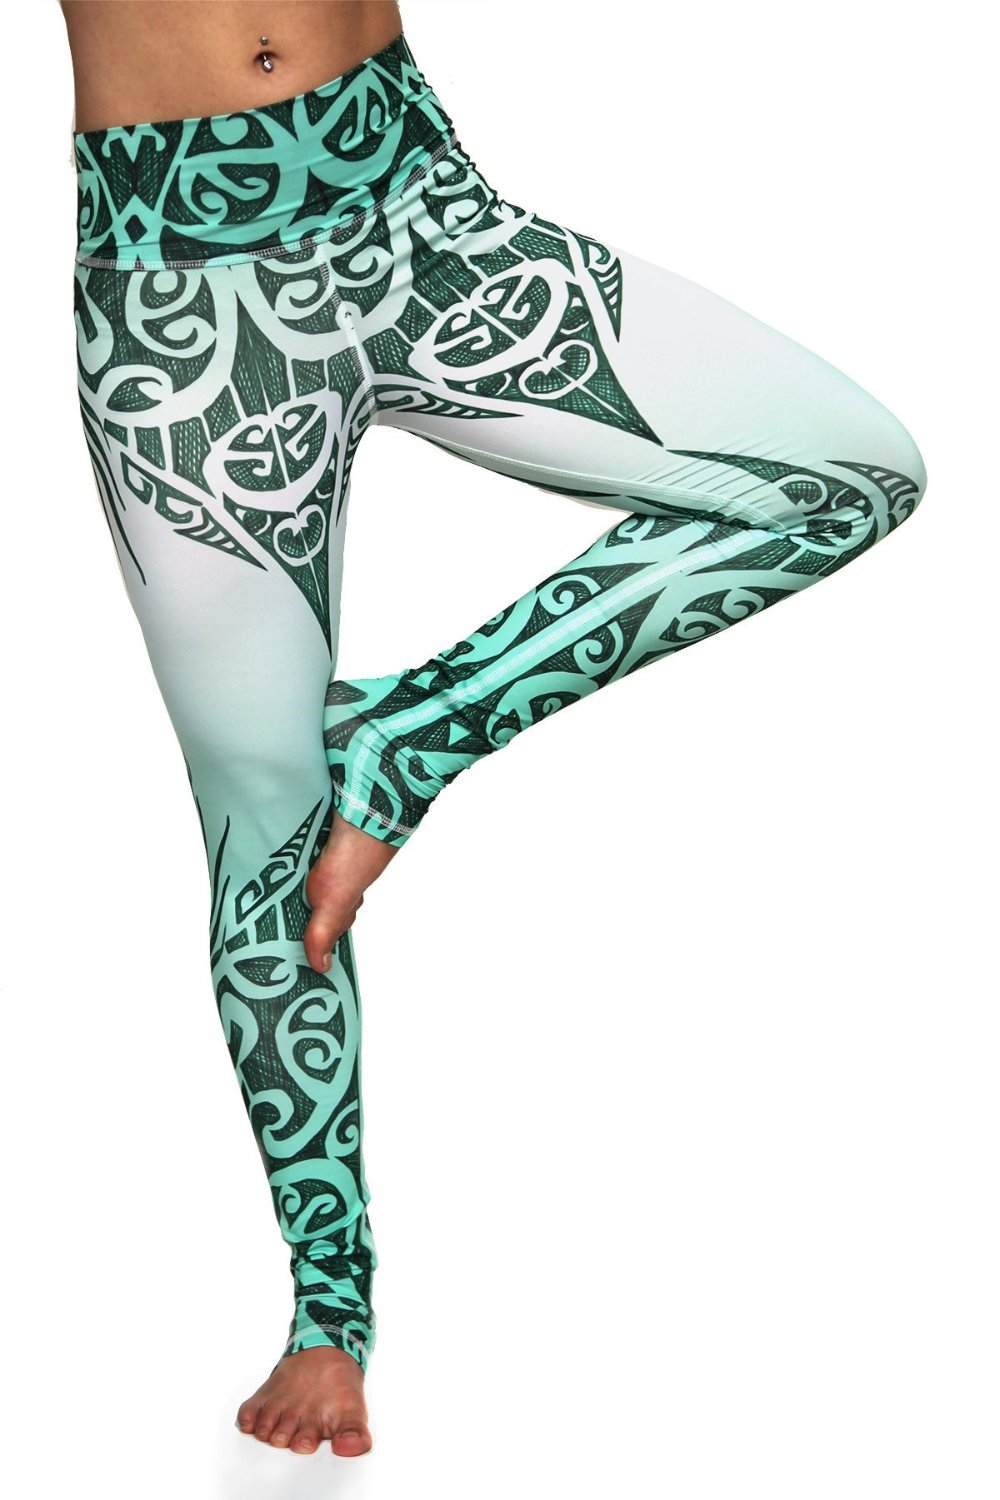 6599692194f01 Jade Queen high waisted extra long yoga pants with exotic green and white  tribal design made from premium sweat wicking Italian fabric.